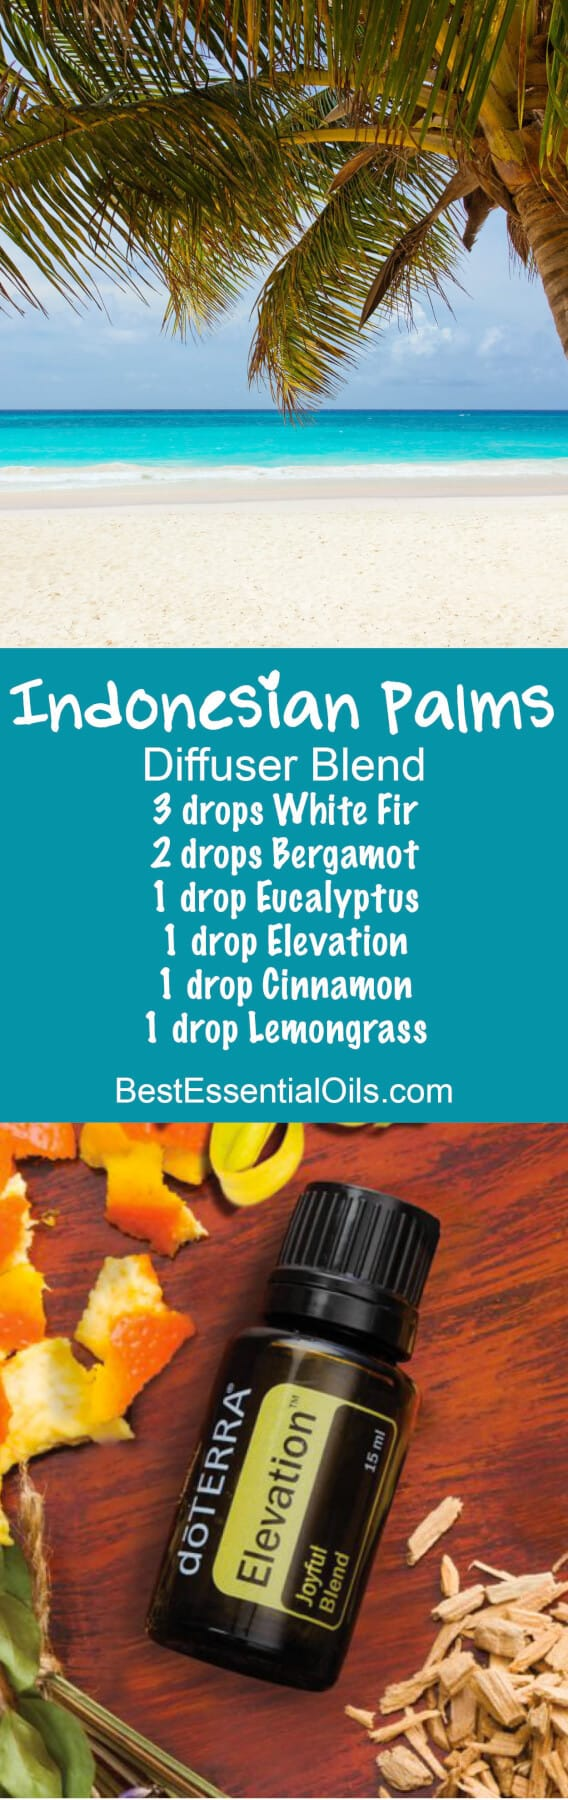 Indonesian Palms doTERRA Diffuser Blend